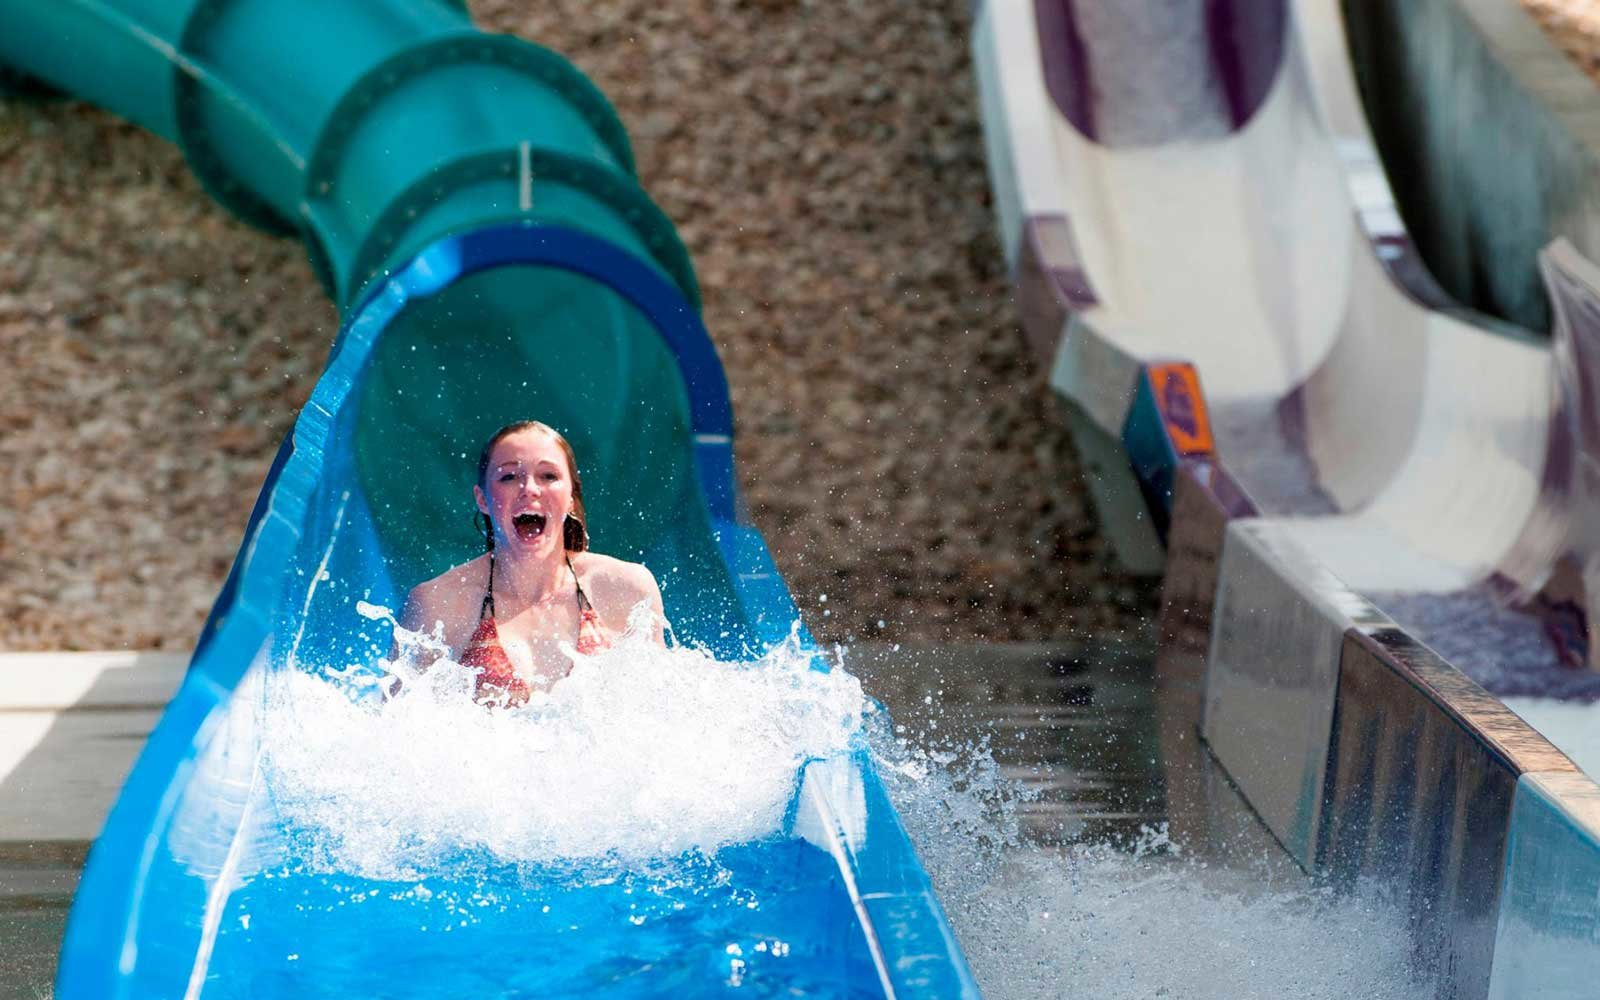 Corkscrew Cavern — Roaring Springs Waterpark, Idaho